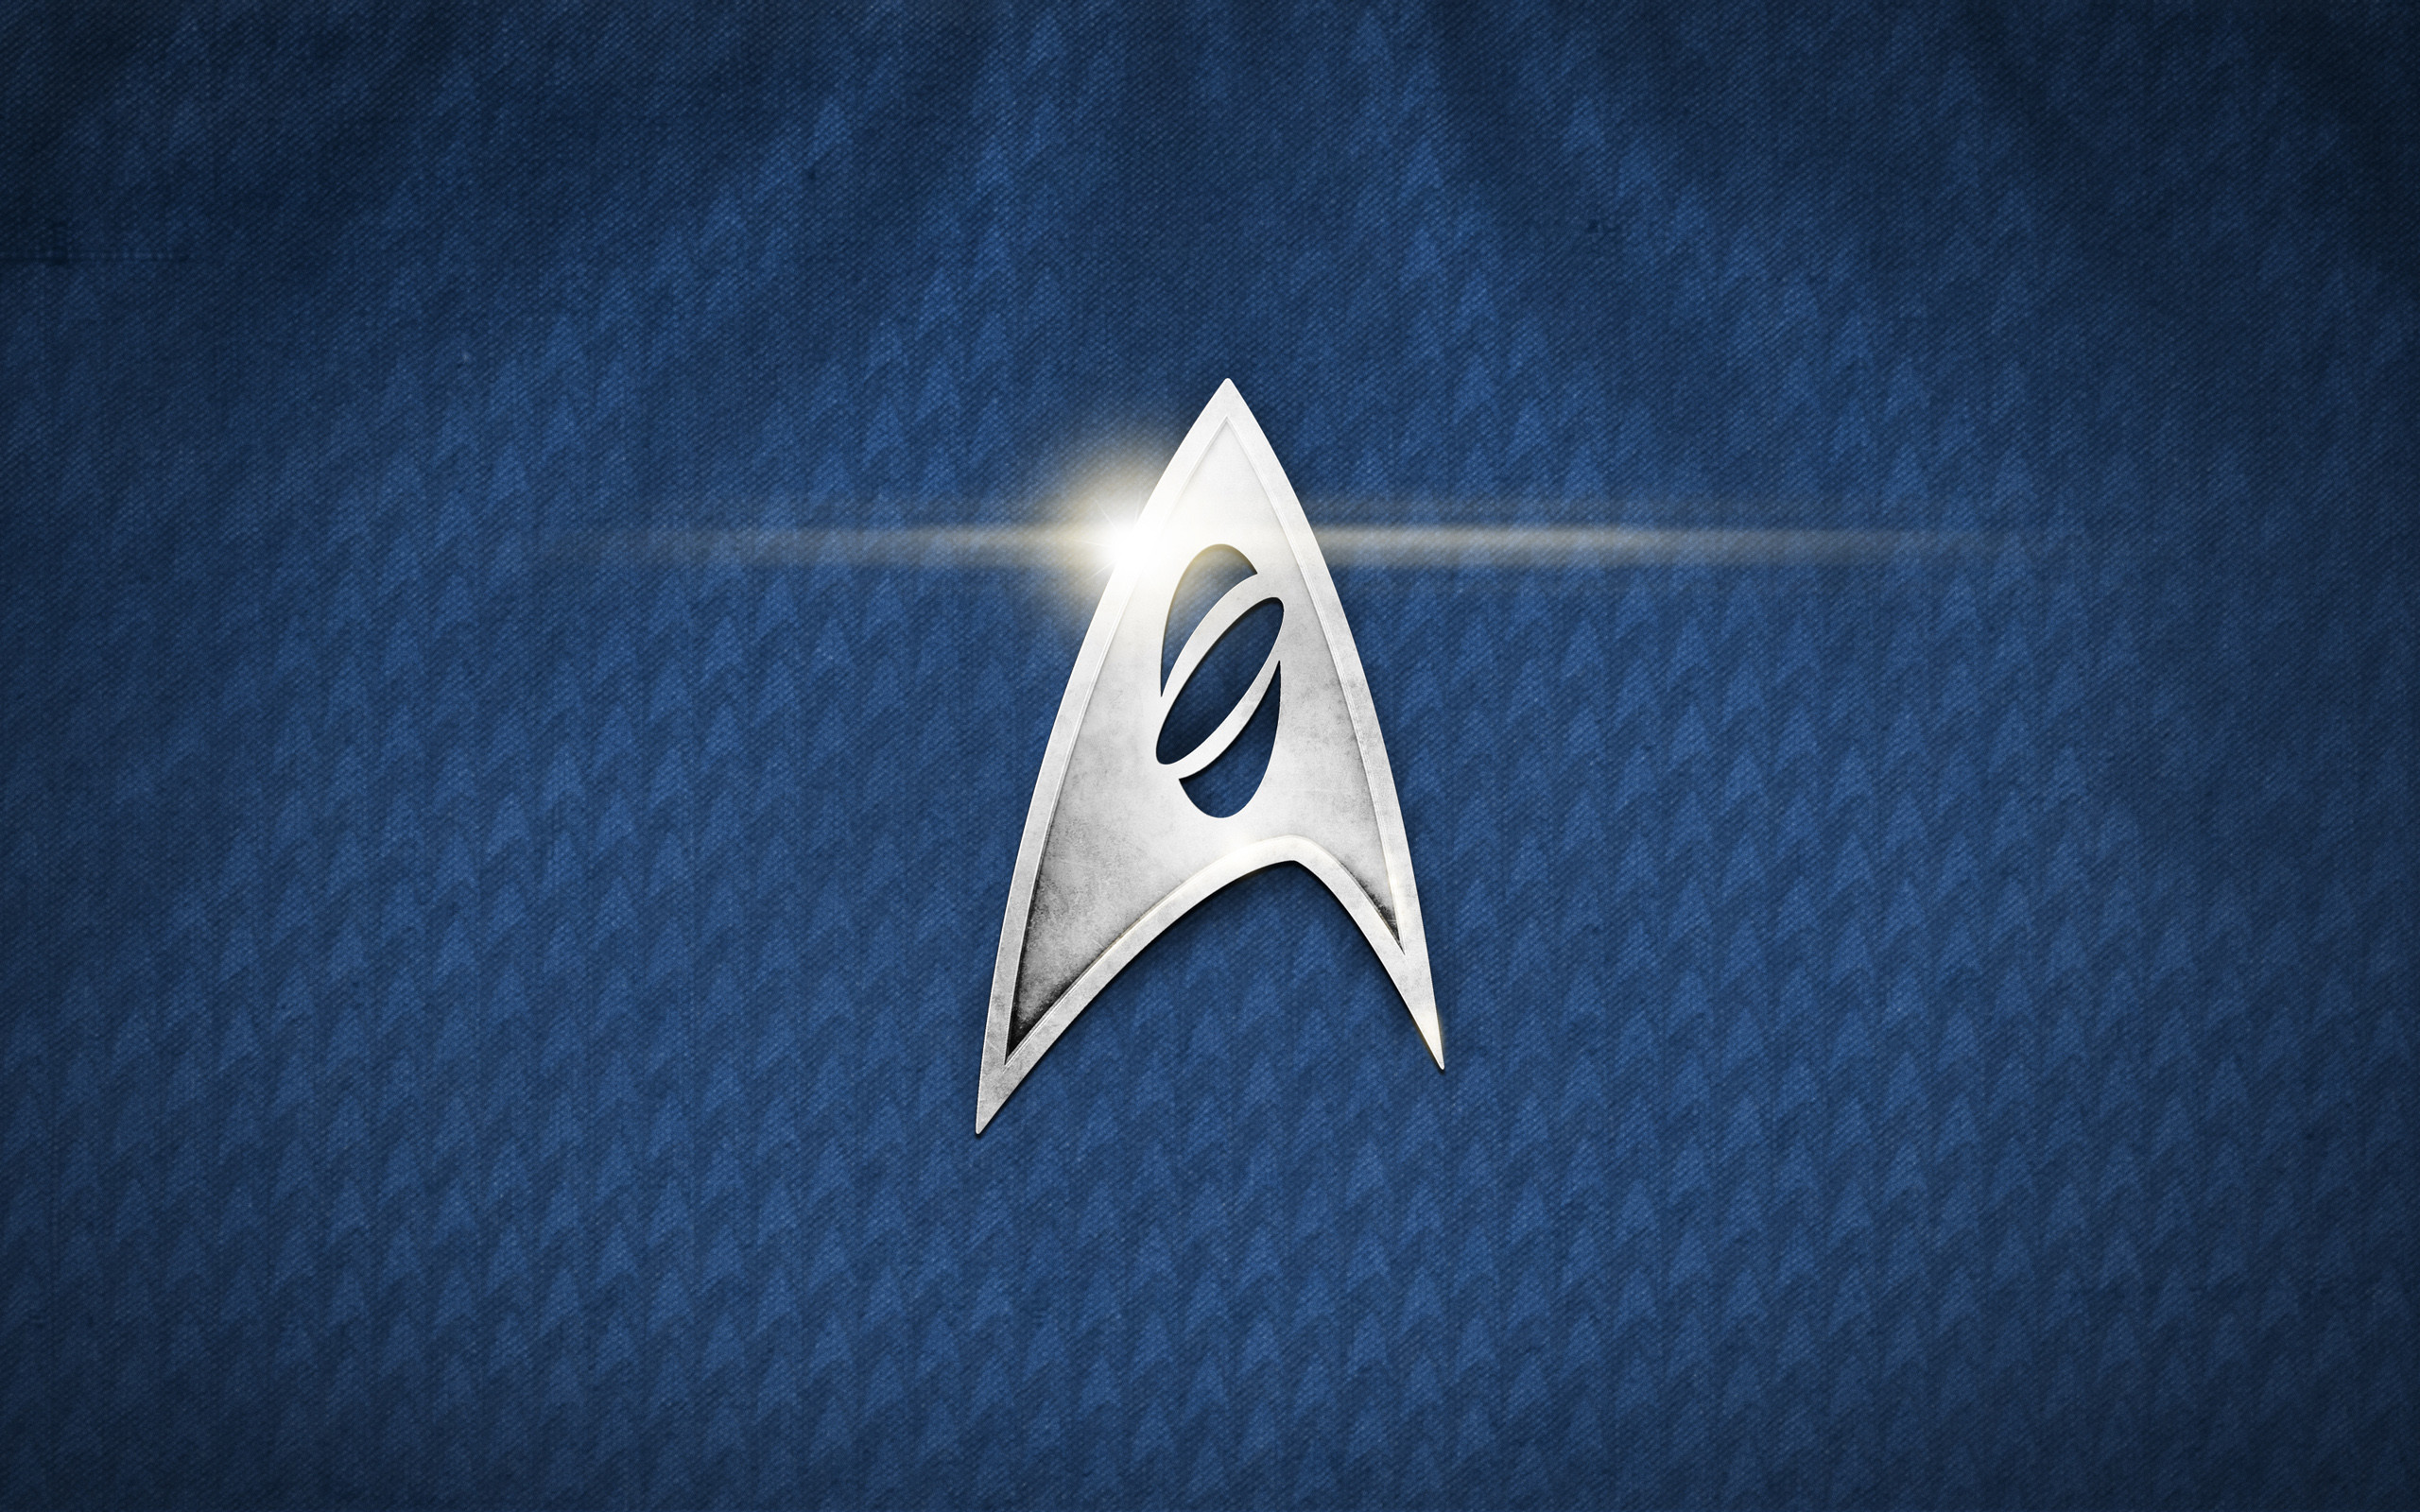 Star Trek Wallpapers   Awesome Wallpapers